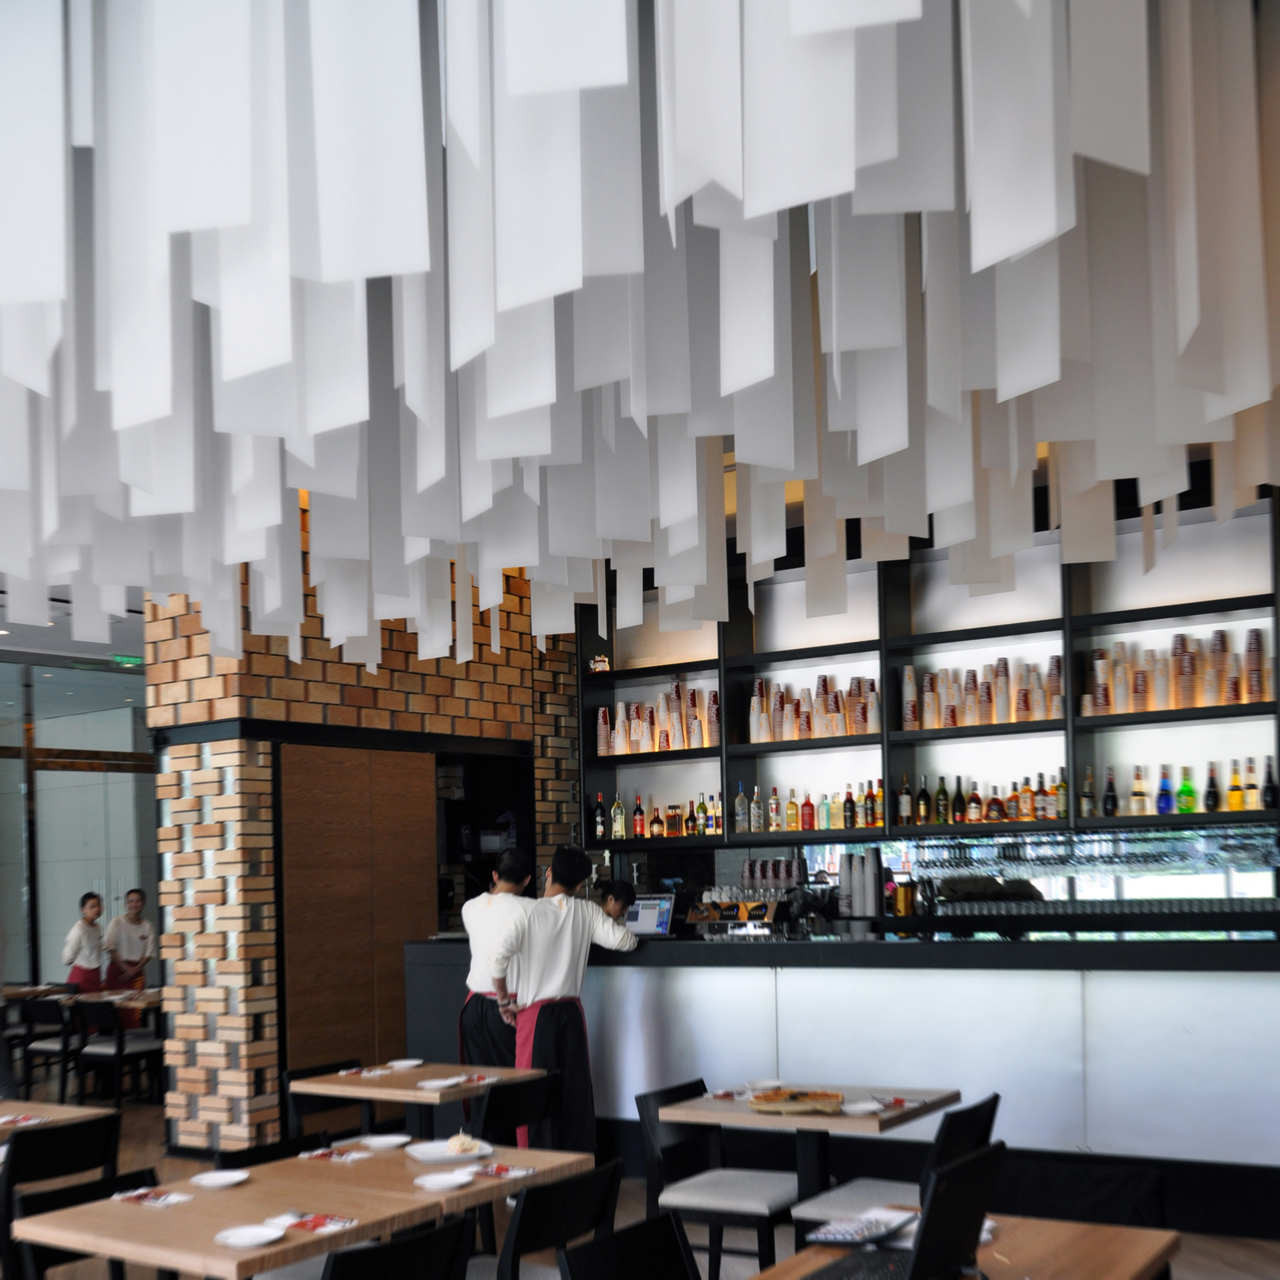 Restaurant Bar Interior Design: Restaurants With Striking Ceiling Designs